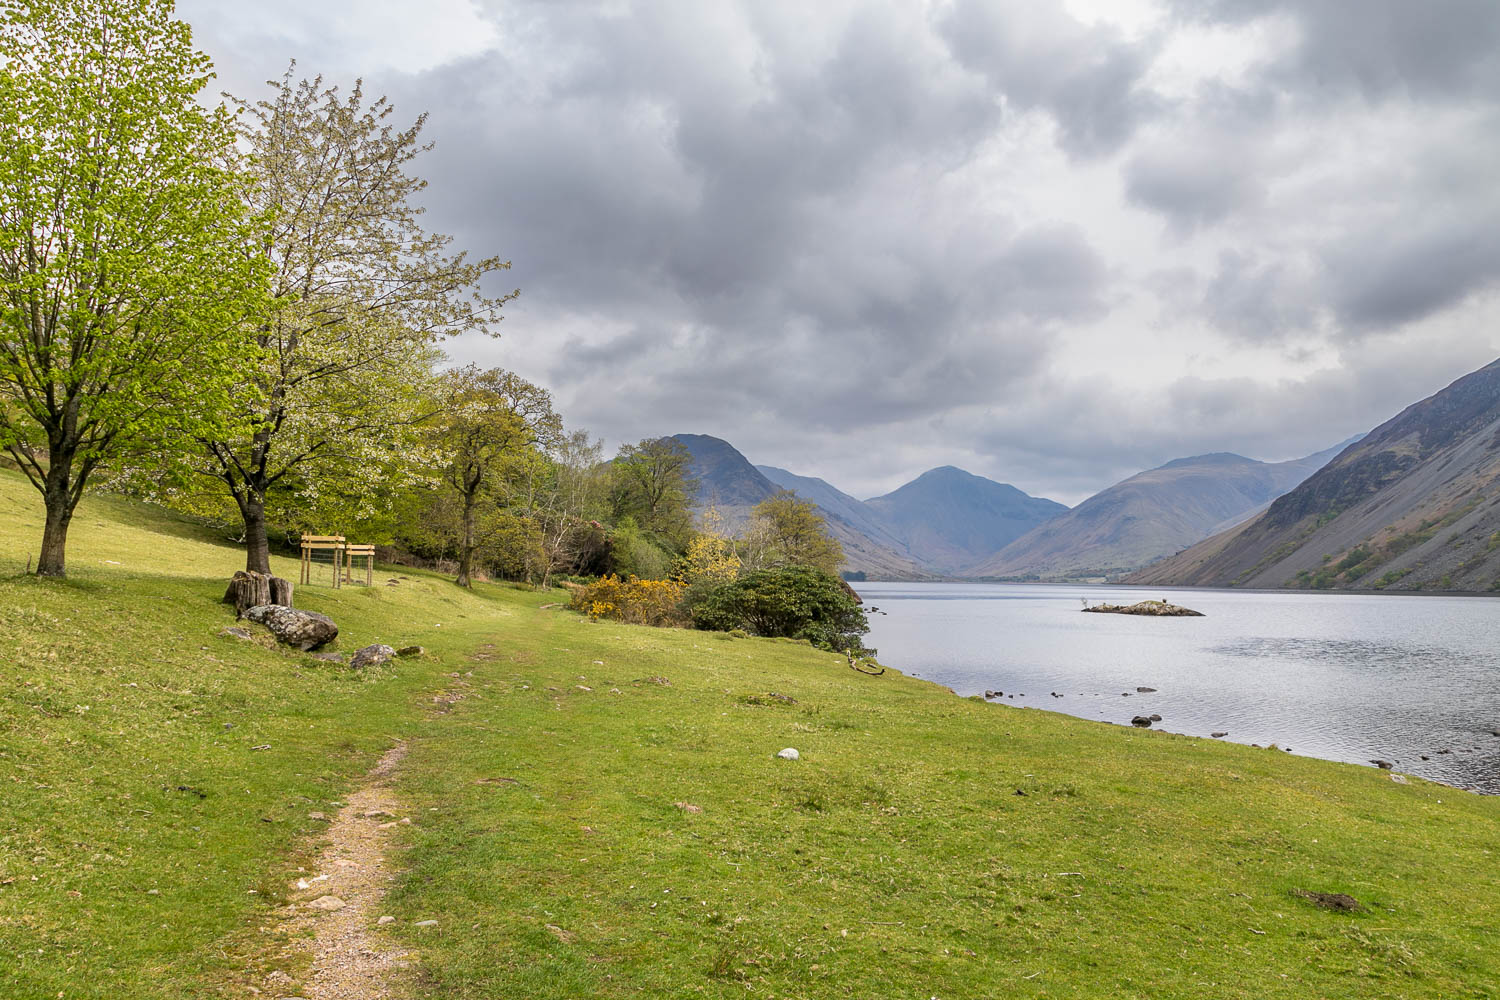 Wast Water view, Wasdale Head view